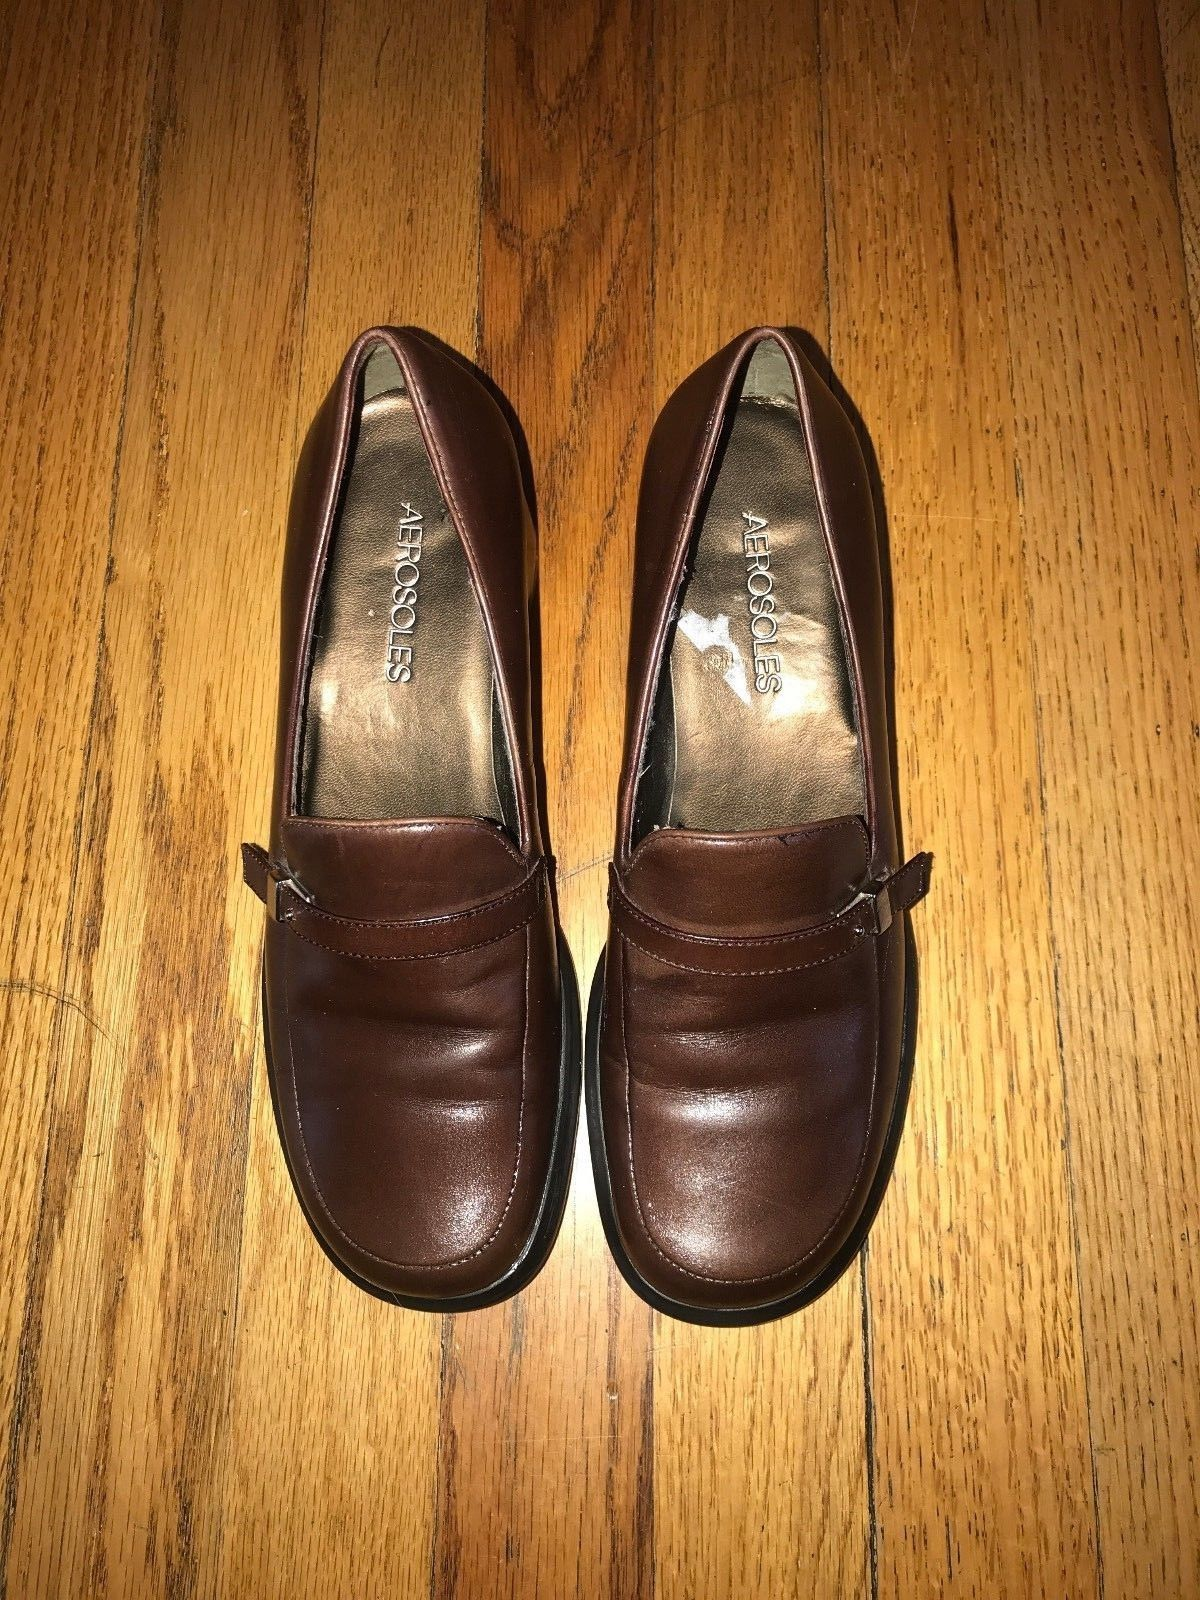 7fd35c45d6f AEROSOLES Womens Brown Leather Block Heels CAREER PATH Shoes Loafers Sz 6.5